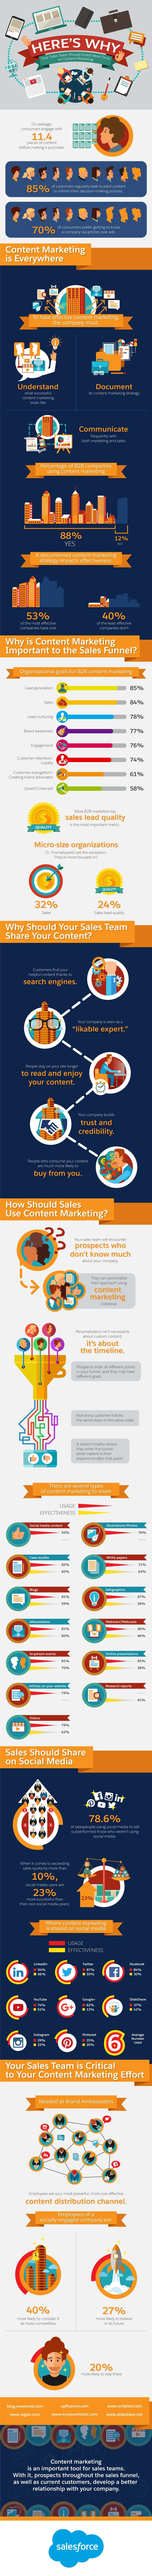 Sales and Content Marketing Infographic